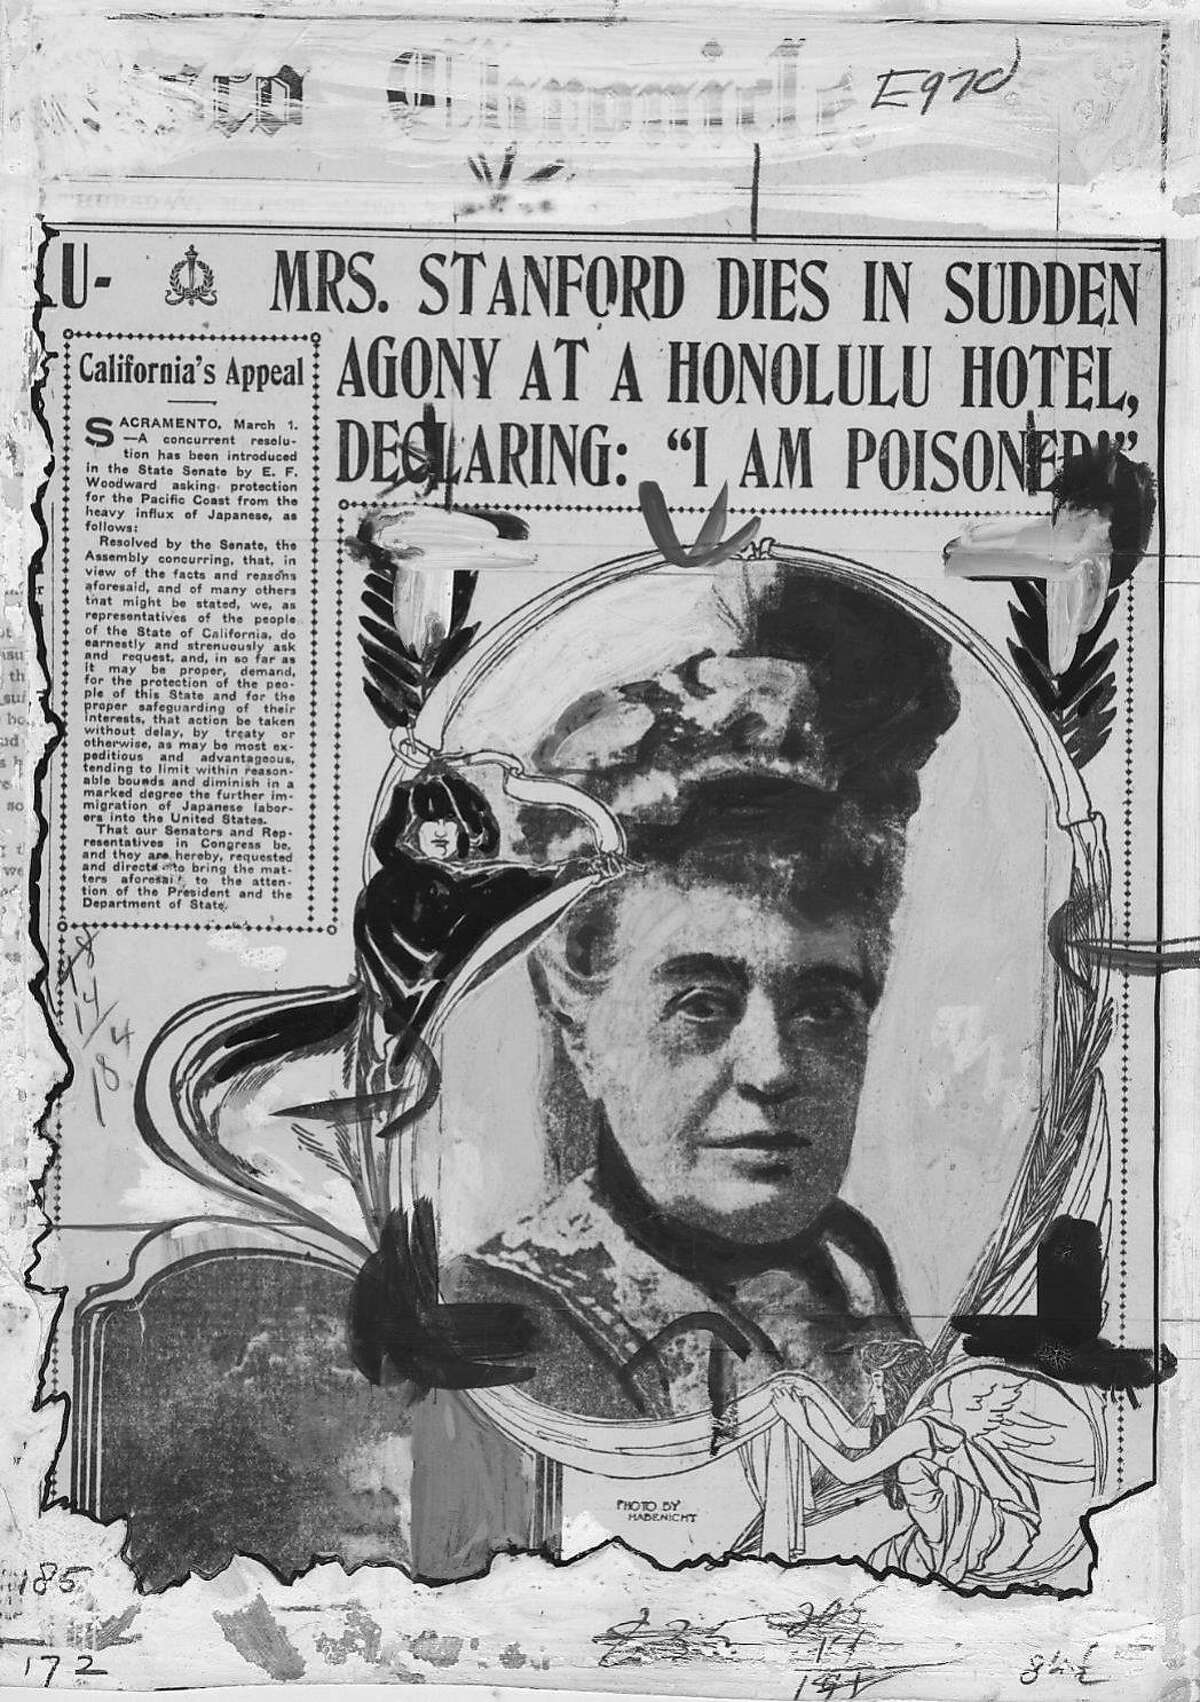 The San Francisco Chronicle's coverage of Mrs. Stanford's murder.